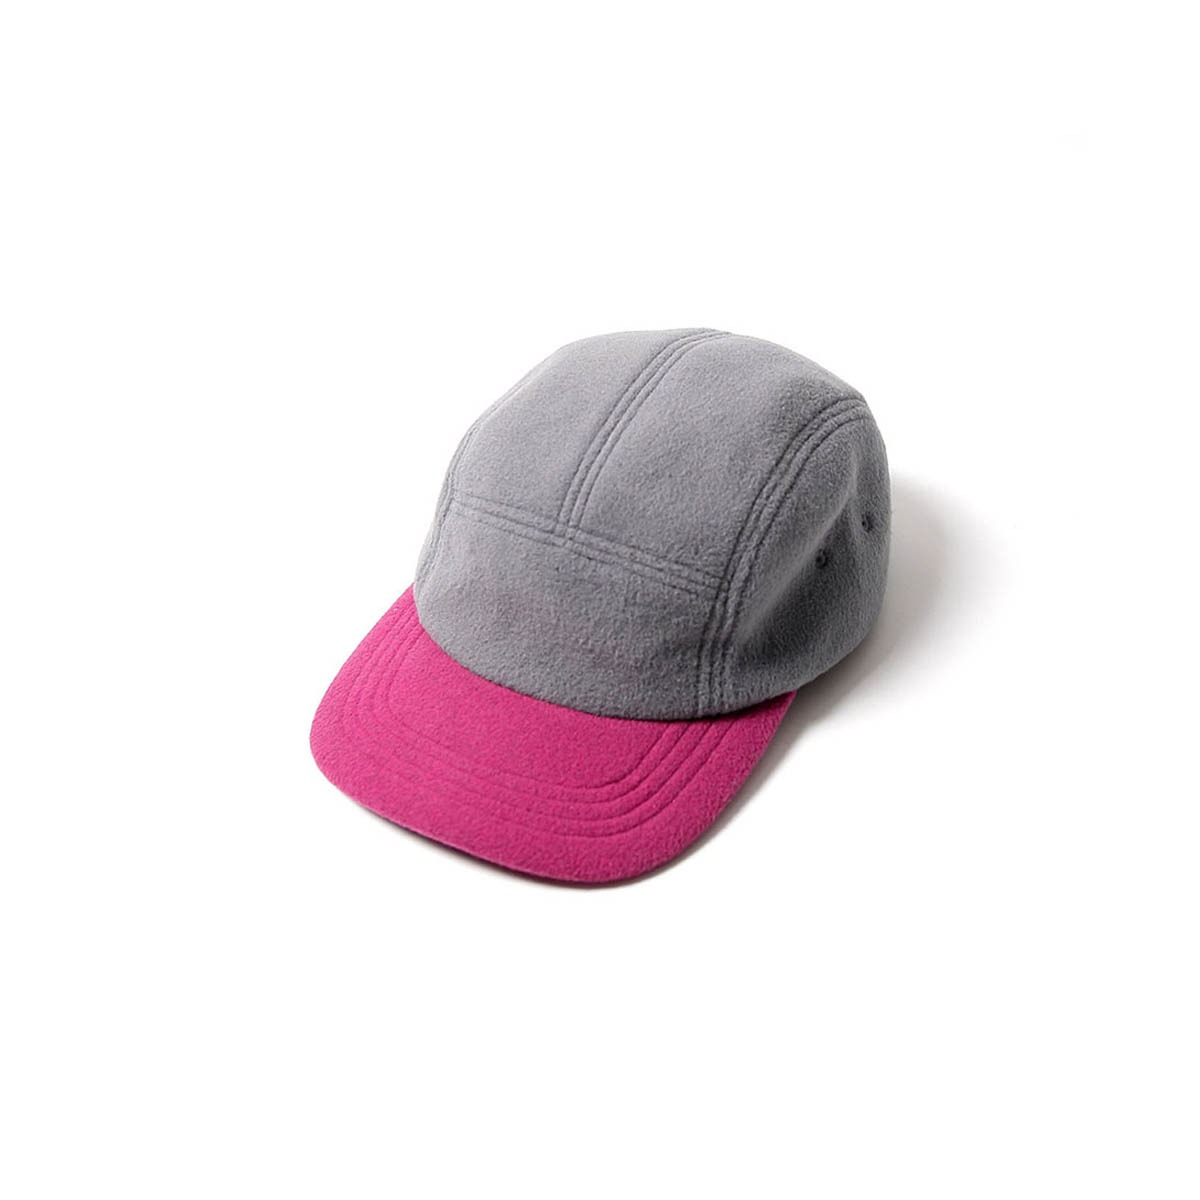 [BEHEAVYER] BHR FLLECE CAMP CAP 'GREY'